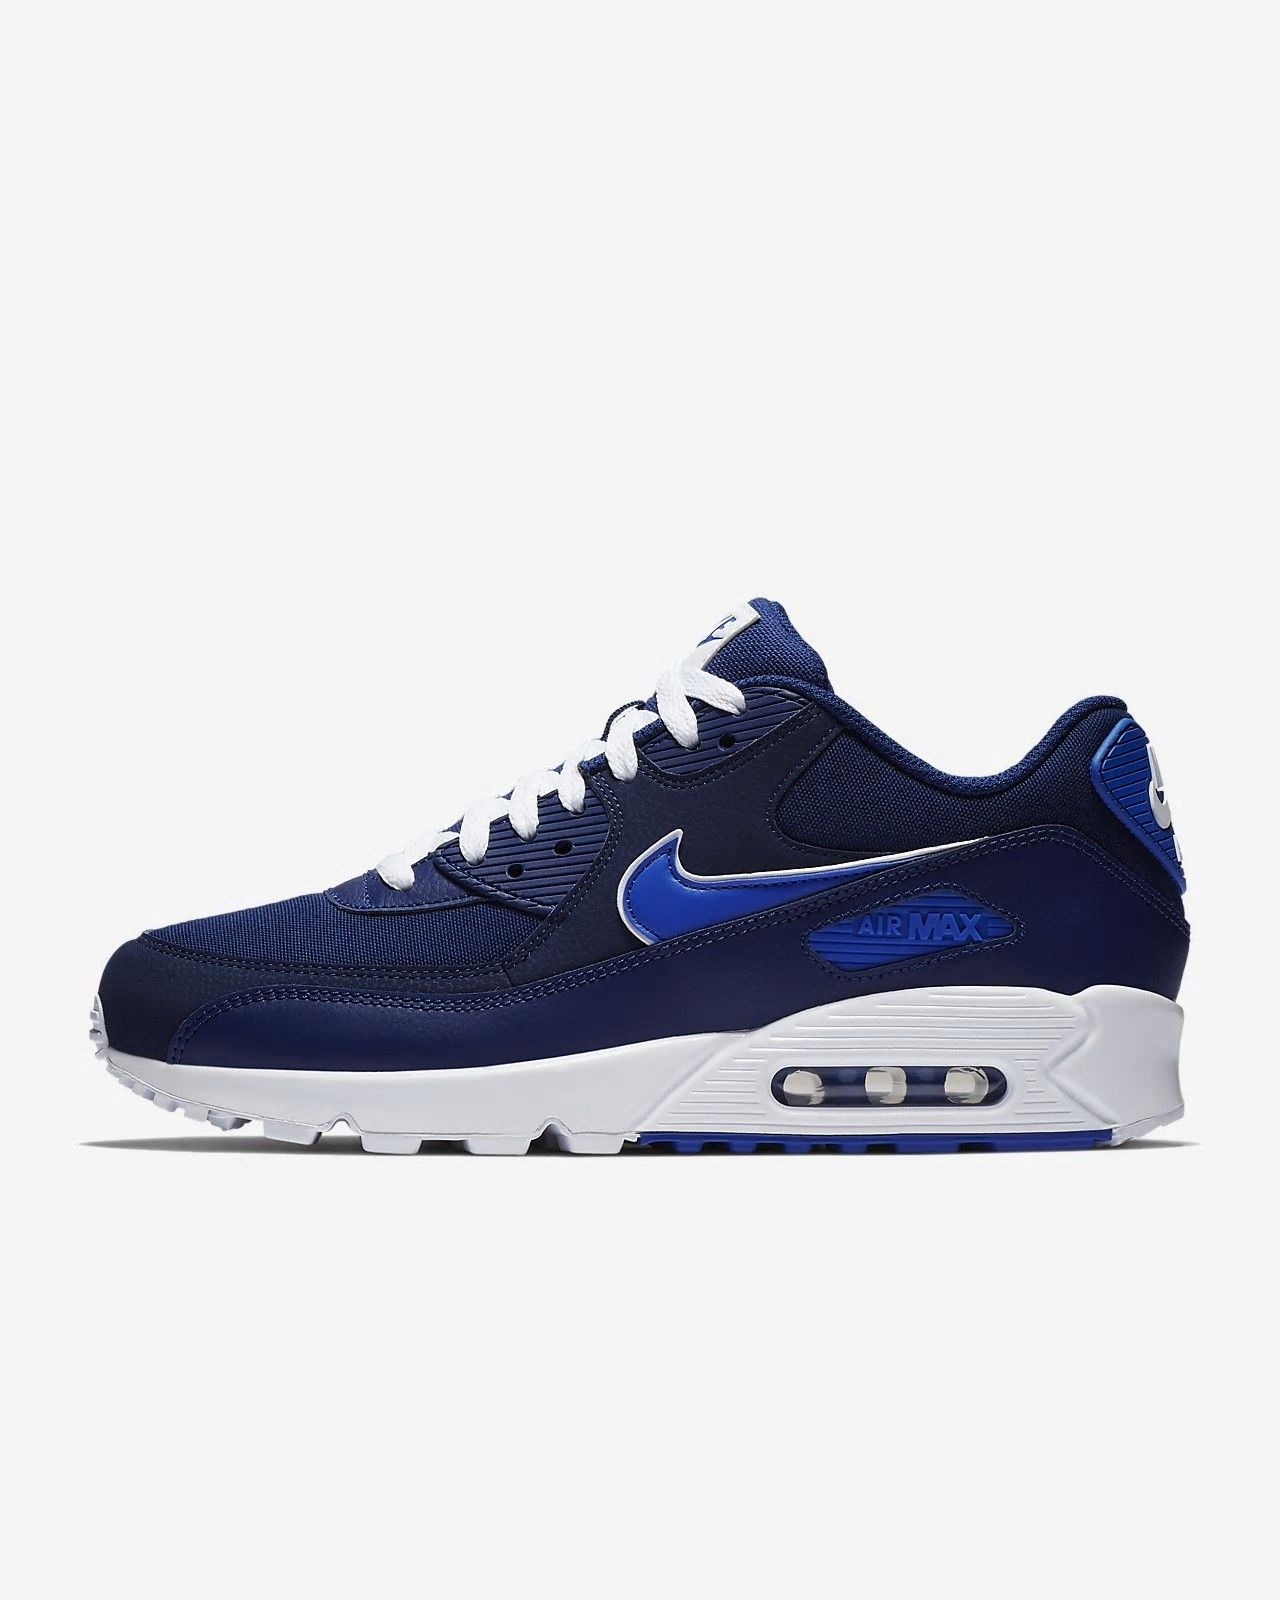 053378794f1 Nike Air Max 90 Essential Blue Void White Game Royal Men s Lifestyle AJ1285- 401  nikeairmax90  nikeairmax  nike